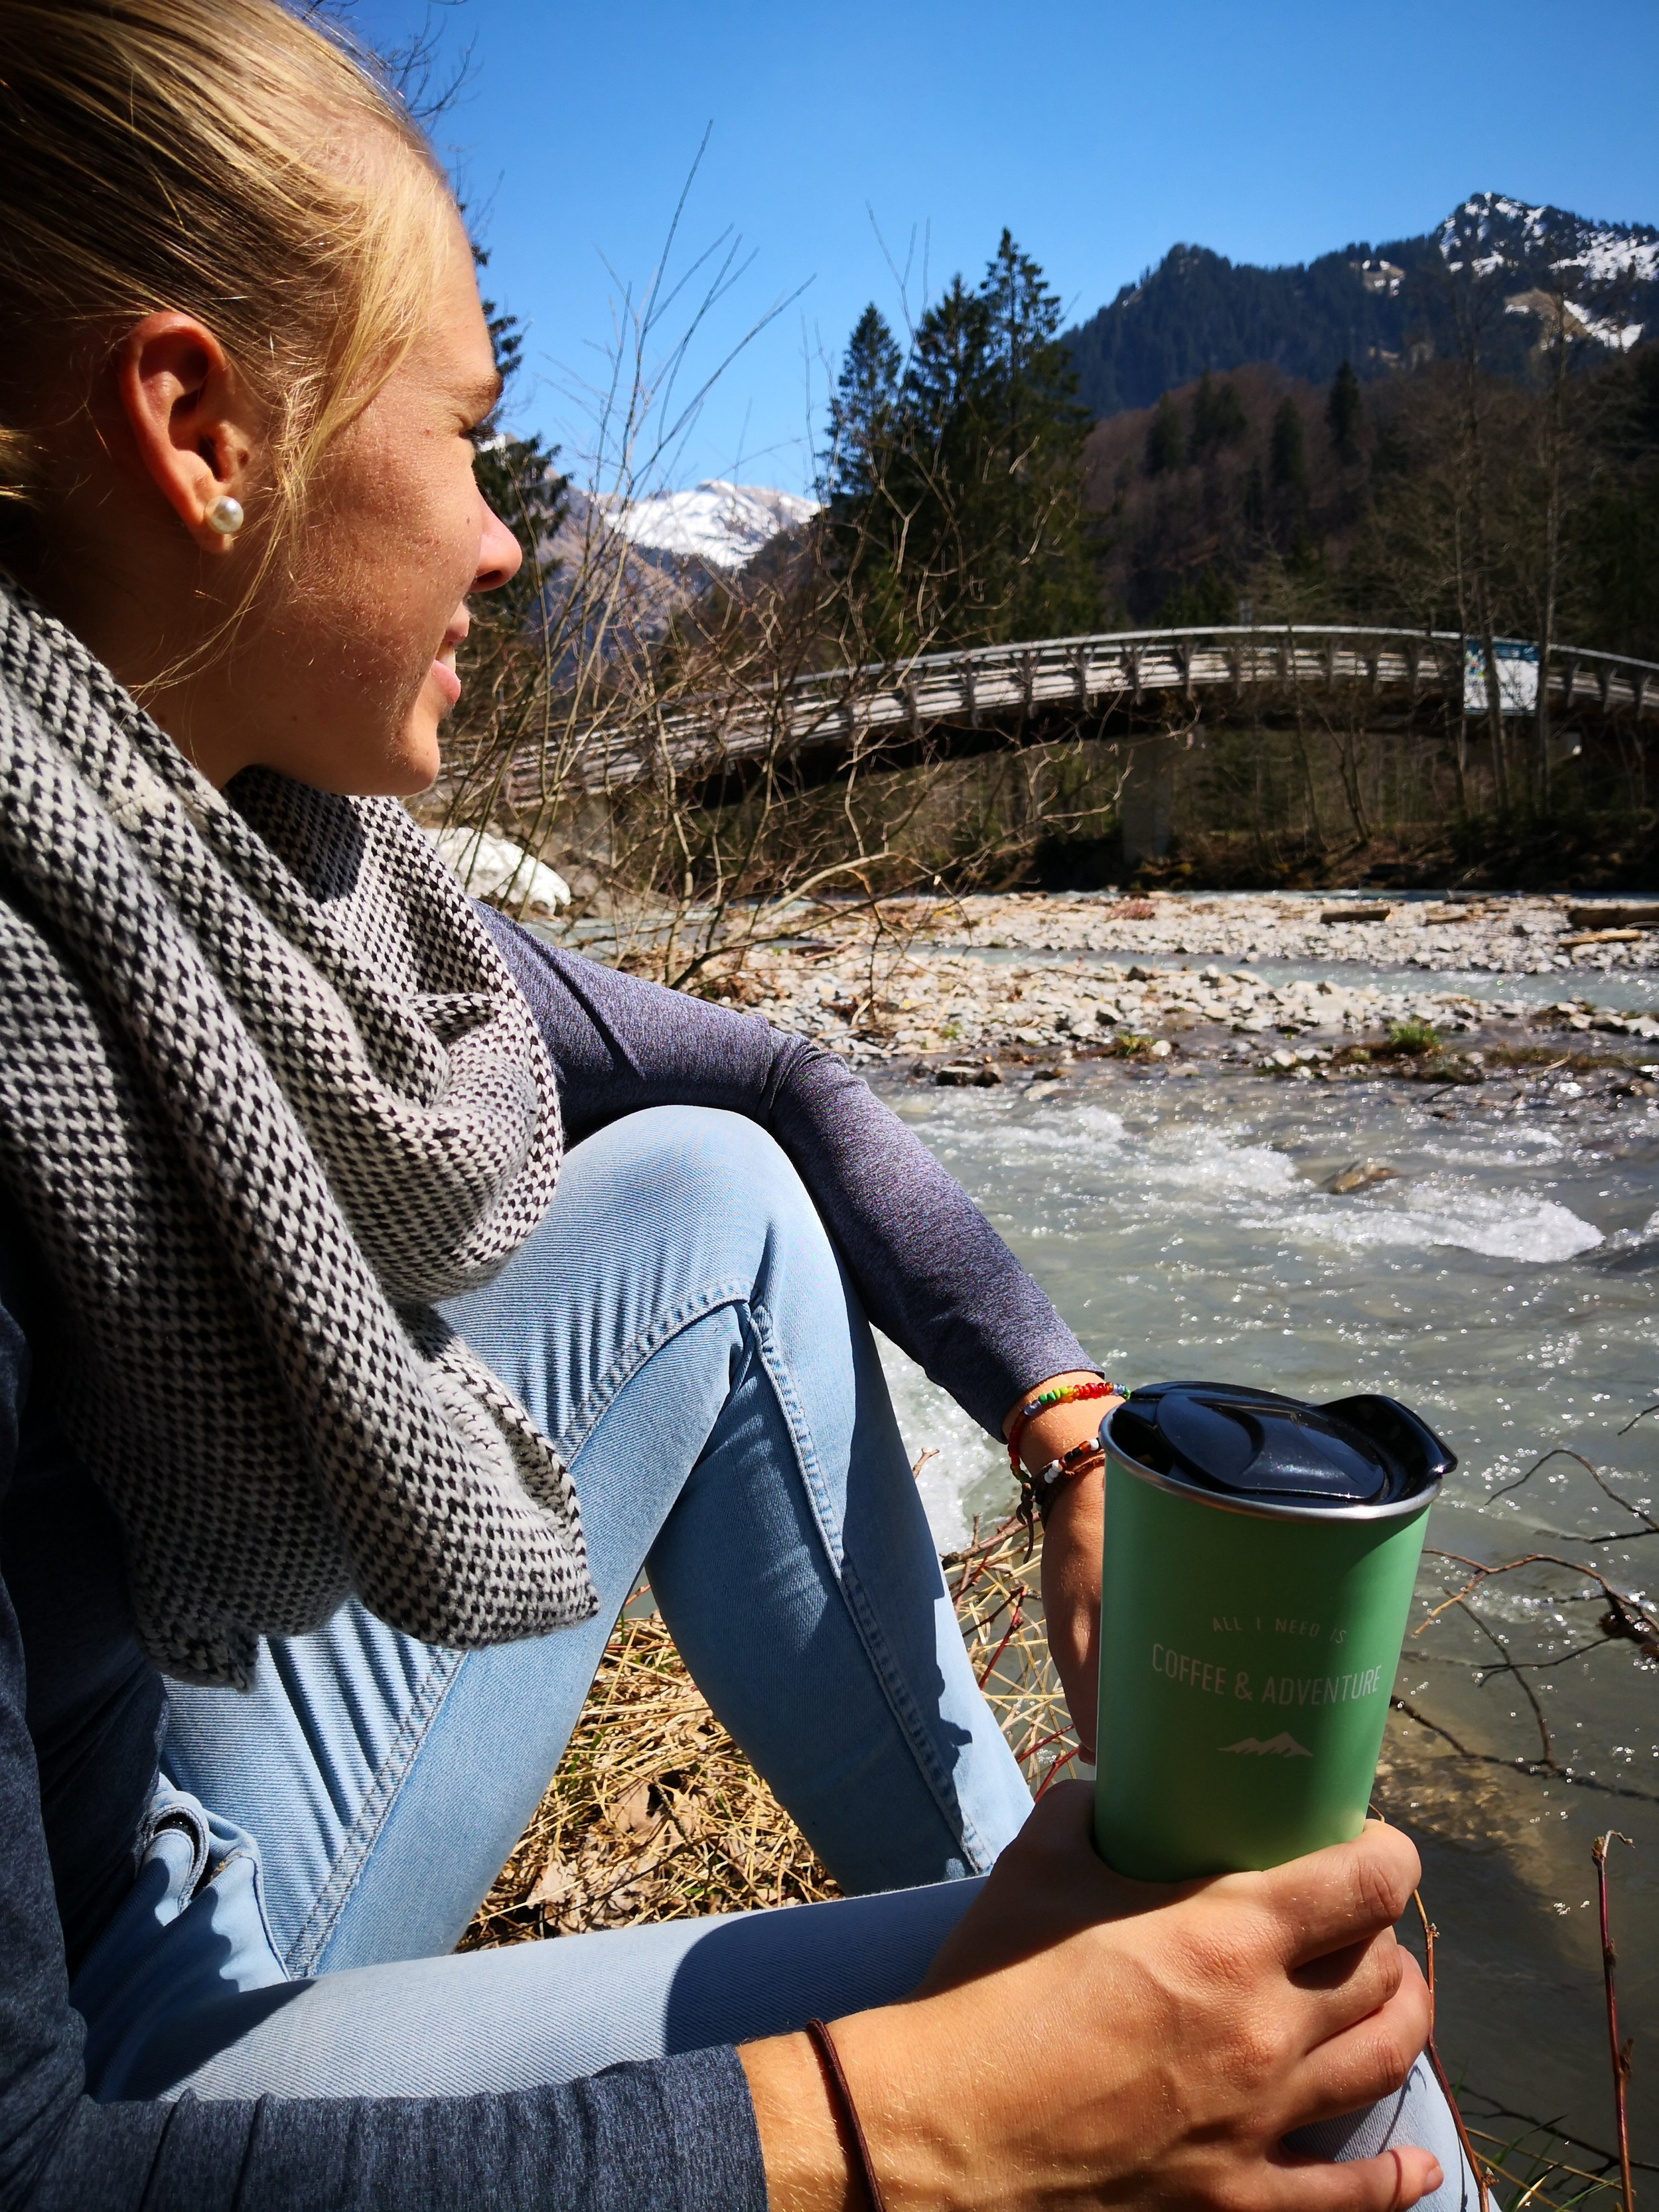 Fluss,Kaffebecher, Person, Berge, blauer Himmel.jpg